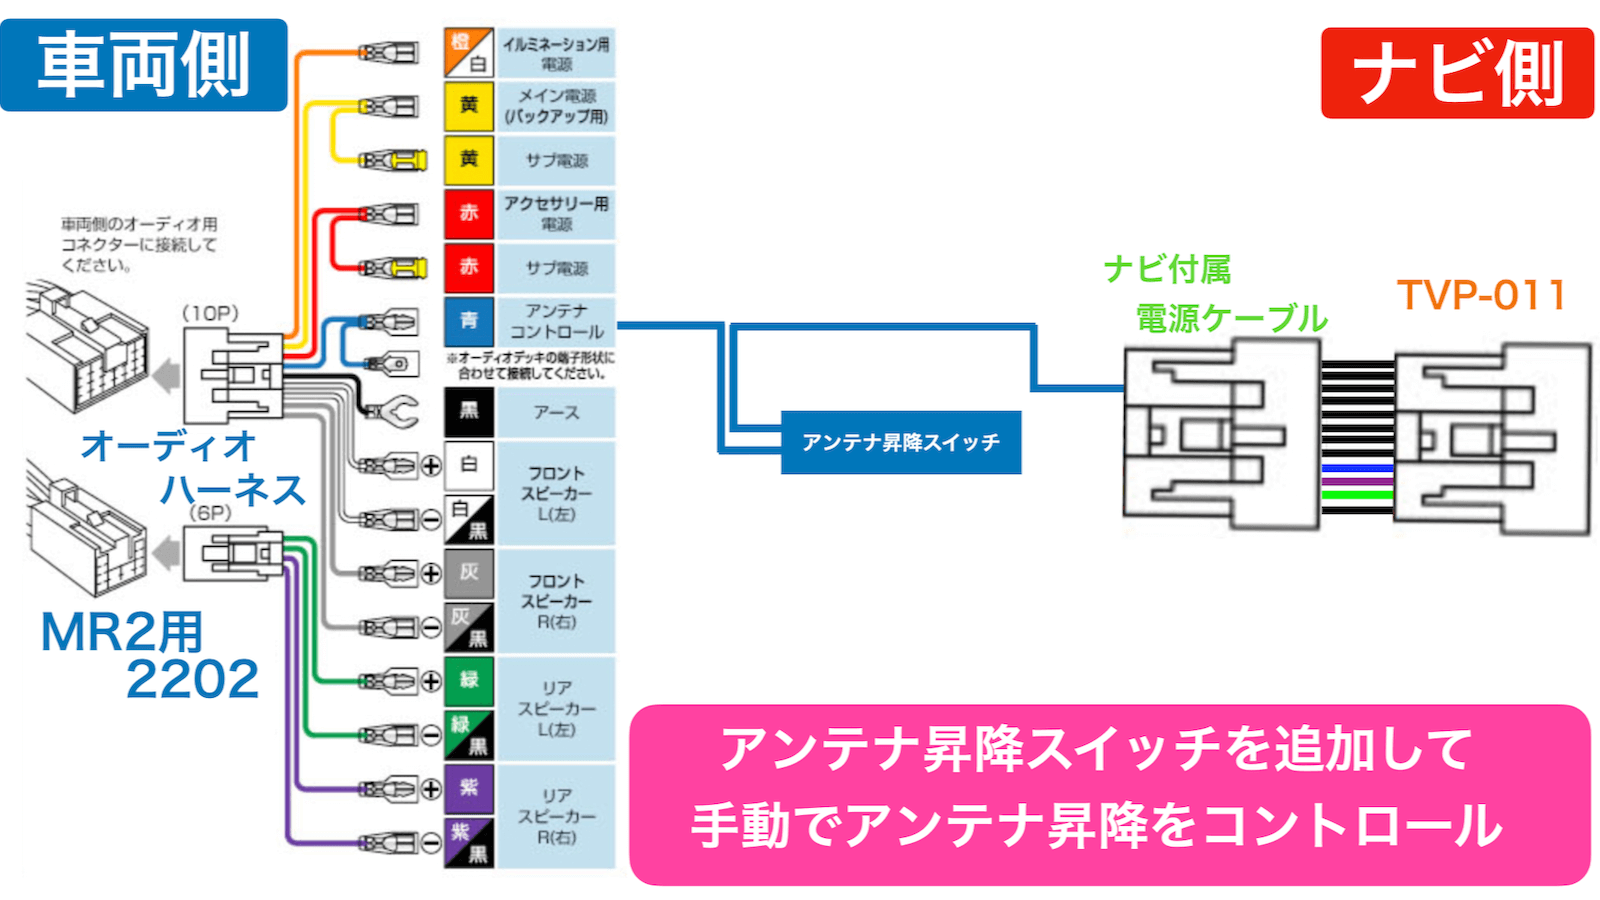 MR2 car navigation antenna lift switch additional connection diagram